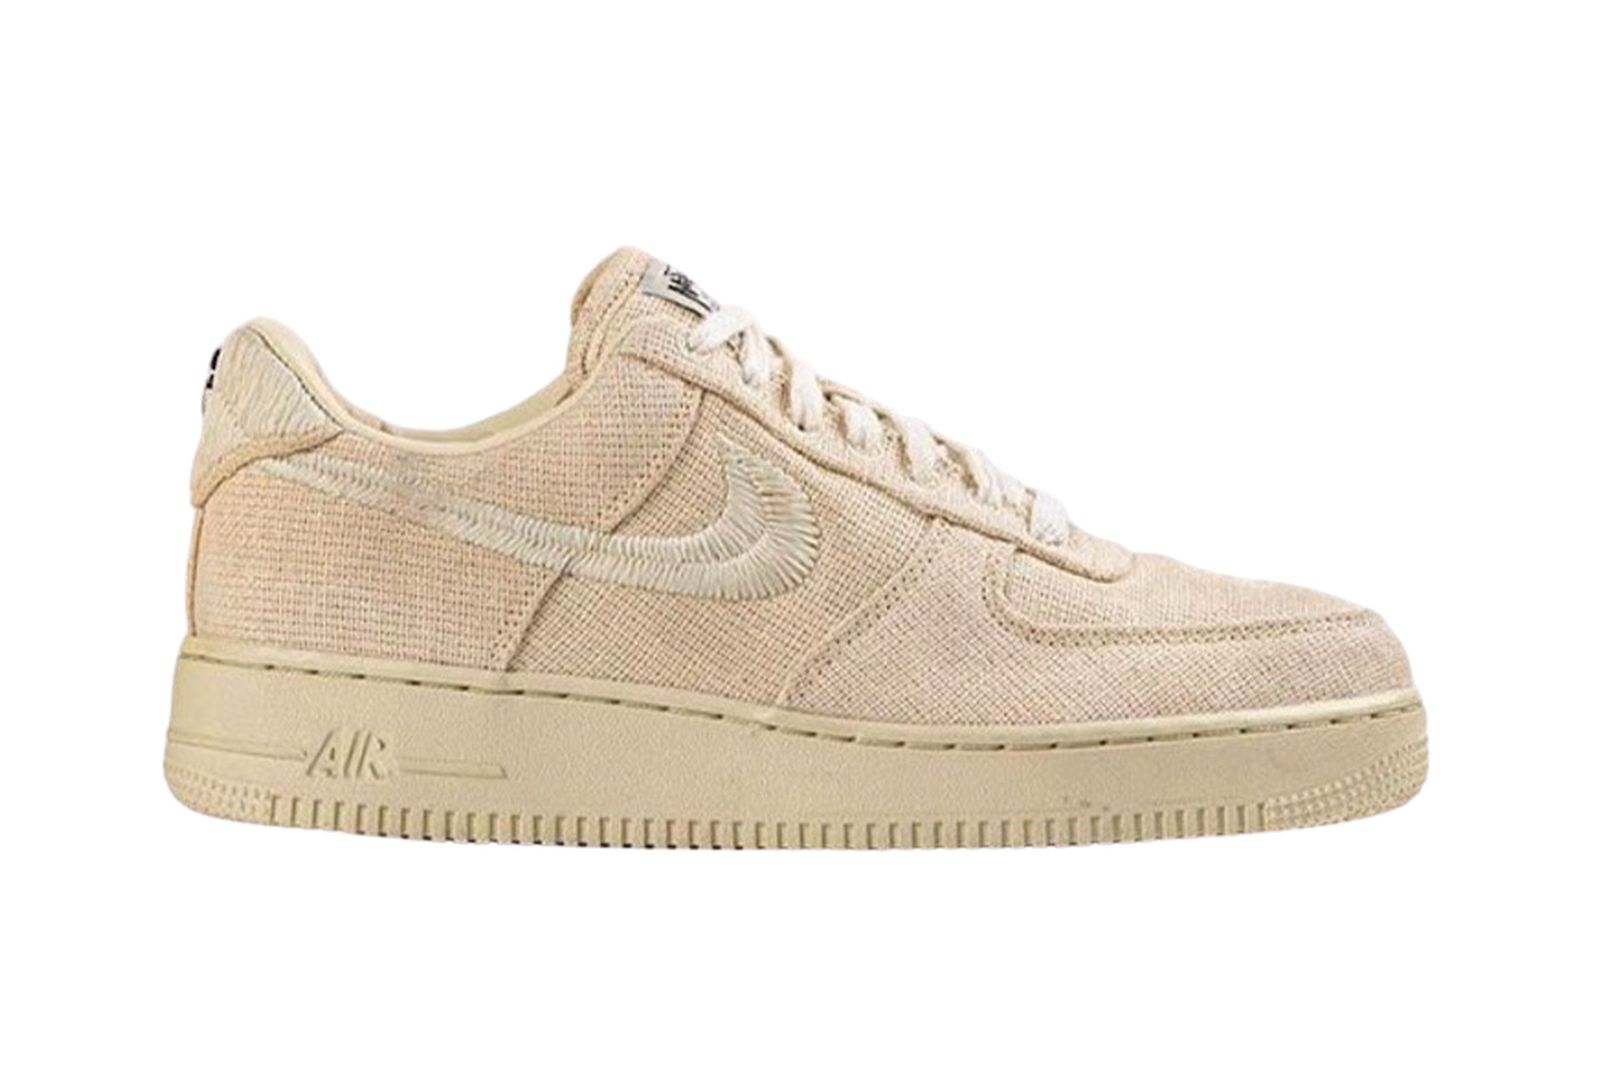 stussy-nike-sneaker-collaboration-roundup-11